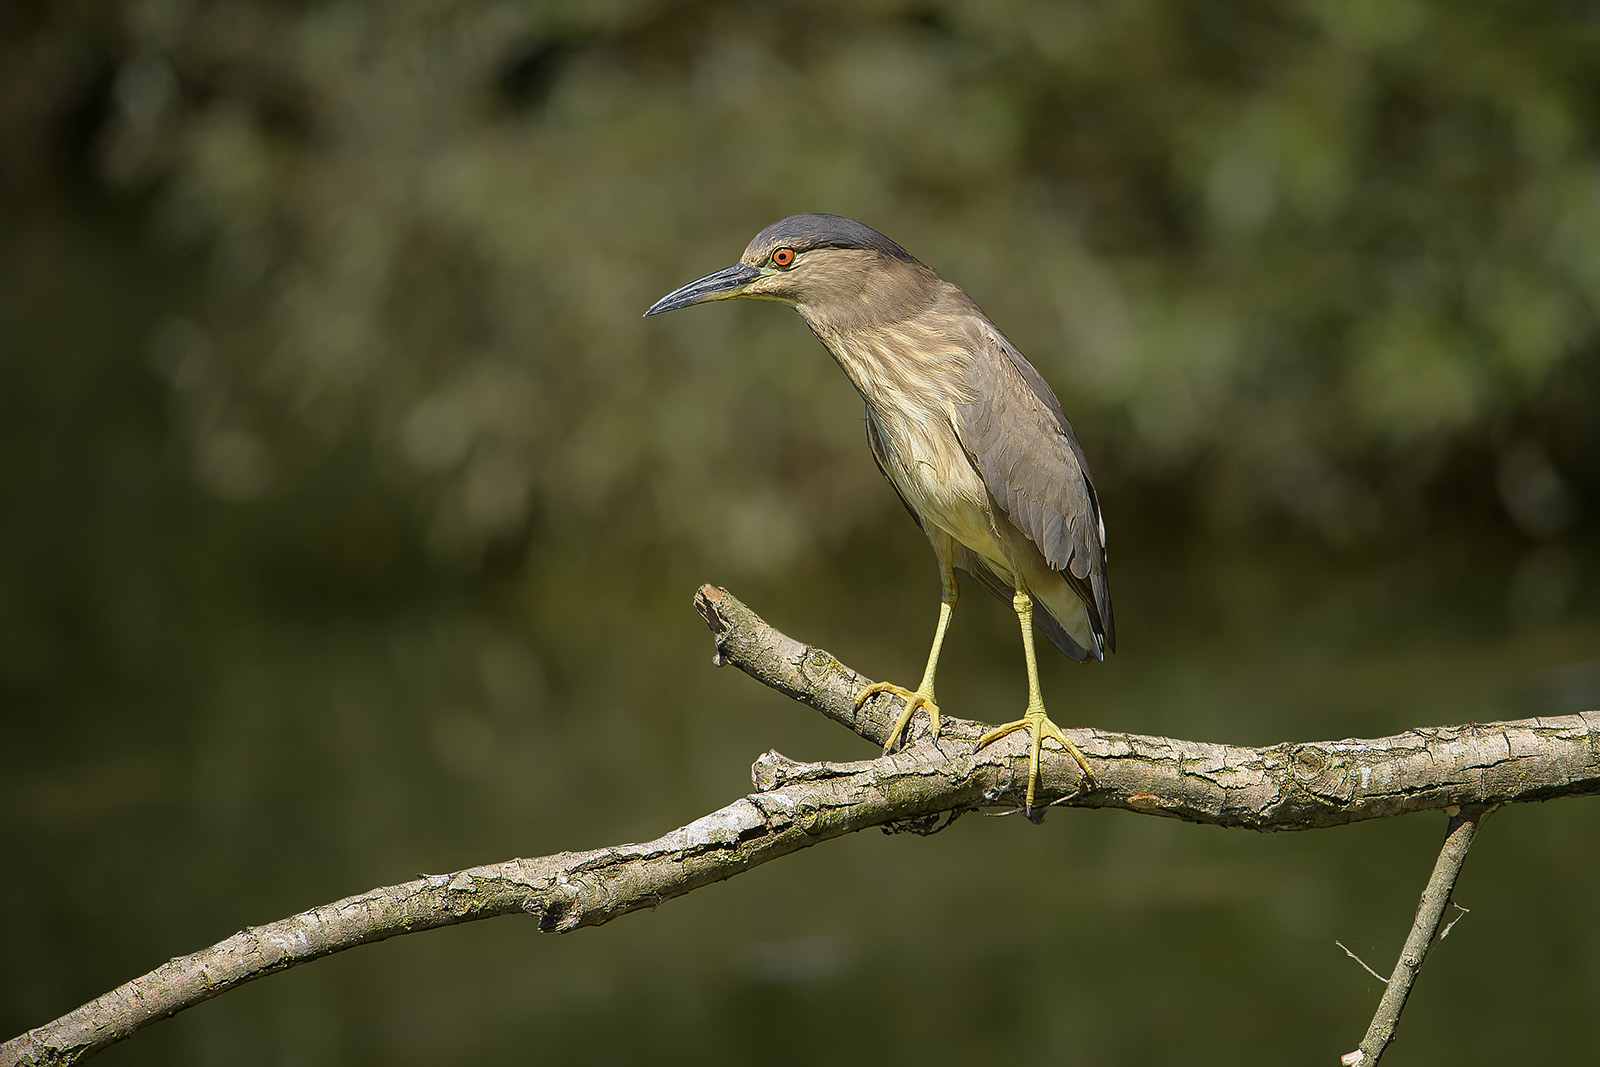 Nycticorax nycticorax – Nitticora – black-crowned night heron